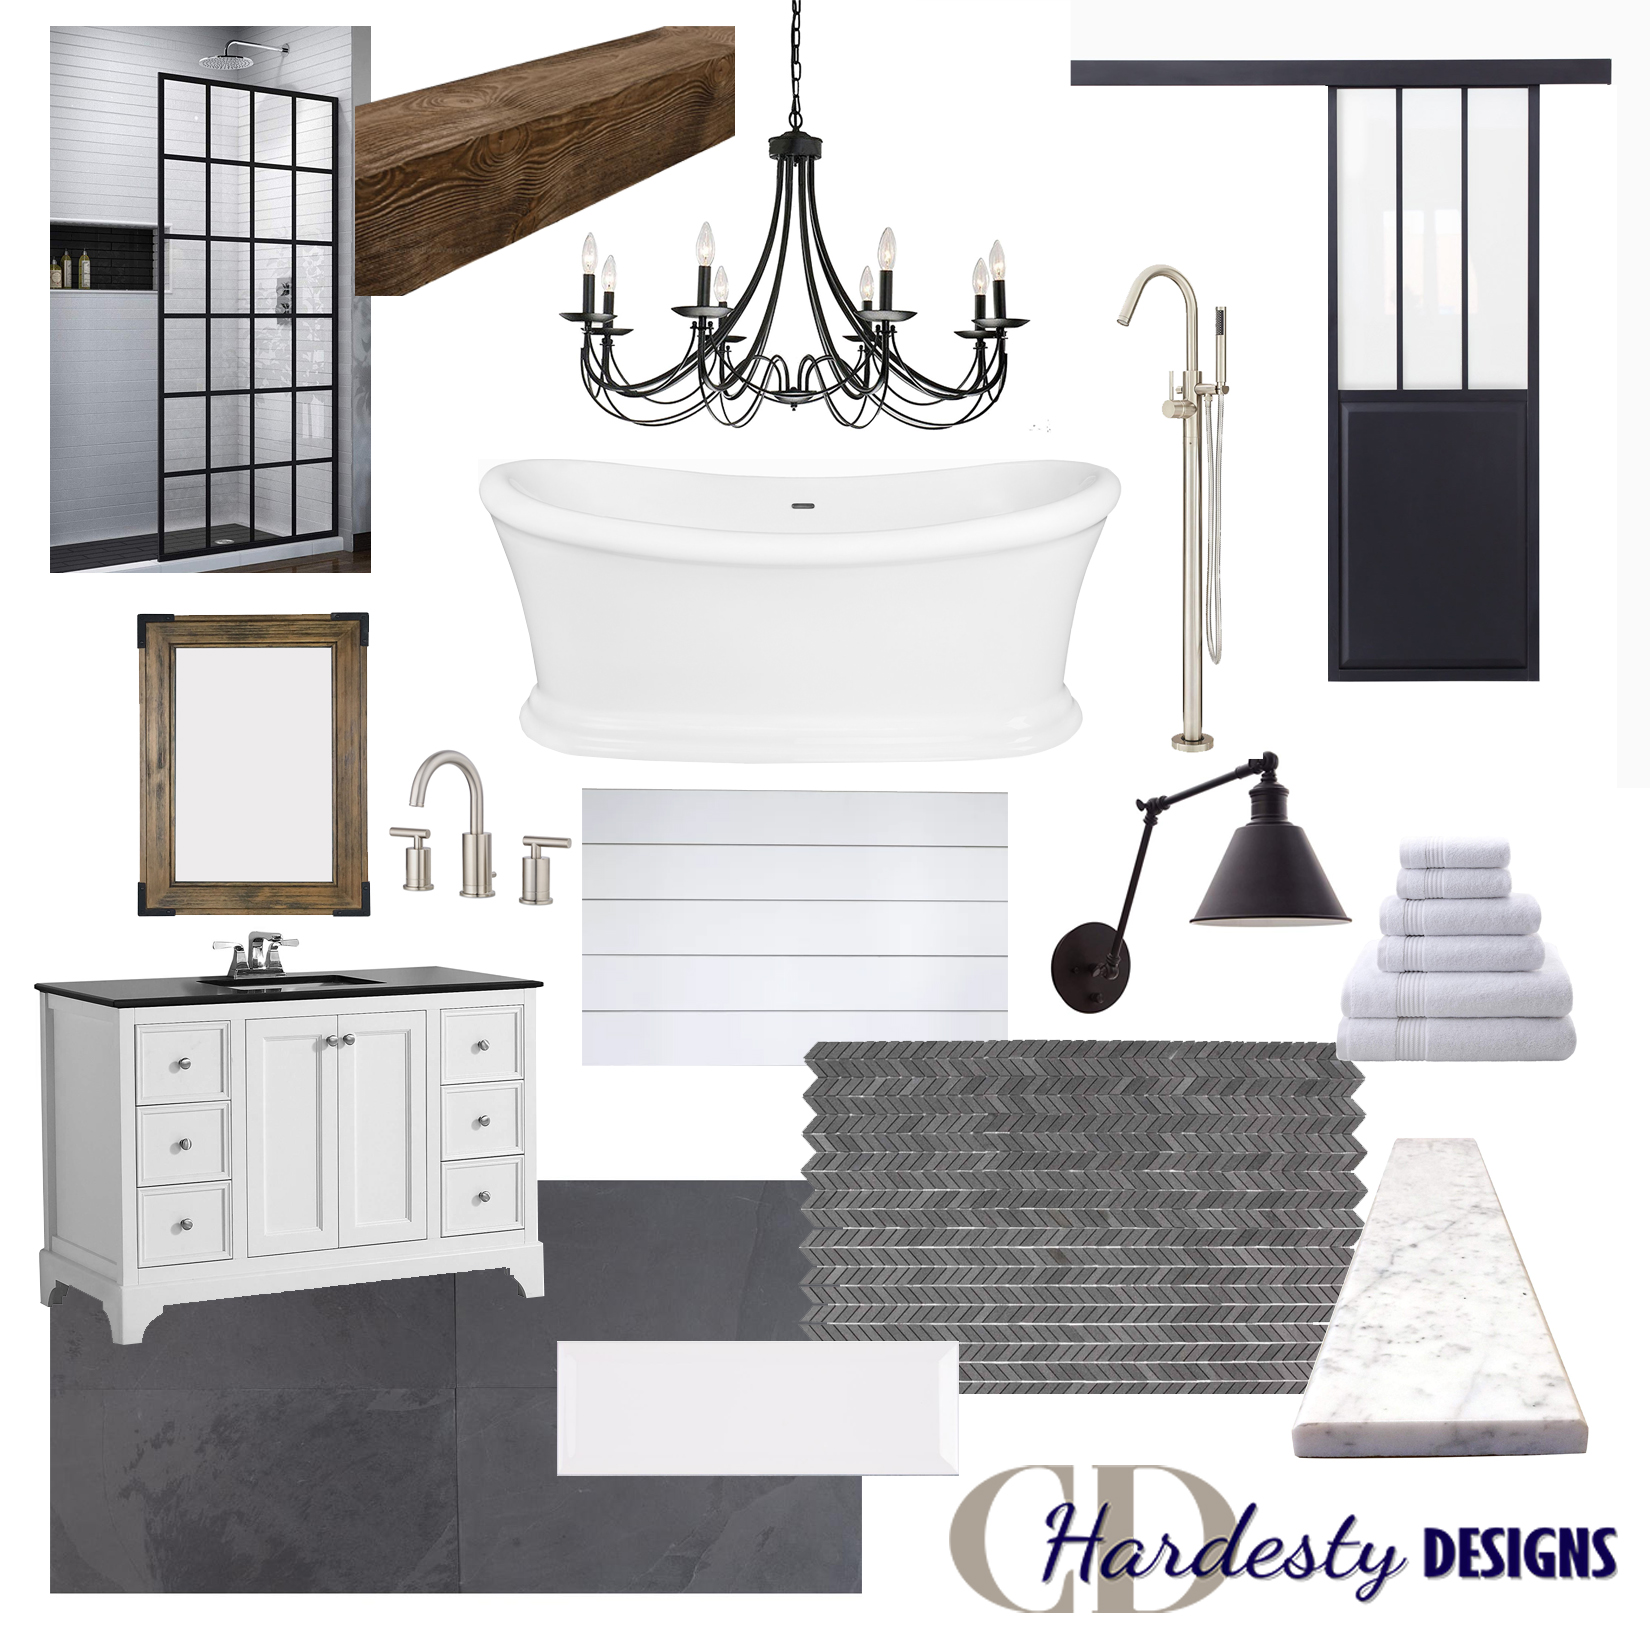 Modern farmhouse bathroom remodel concept board by CDHardesty Designs